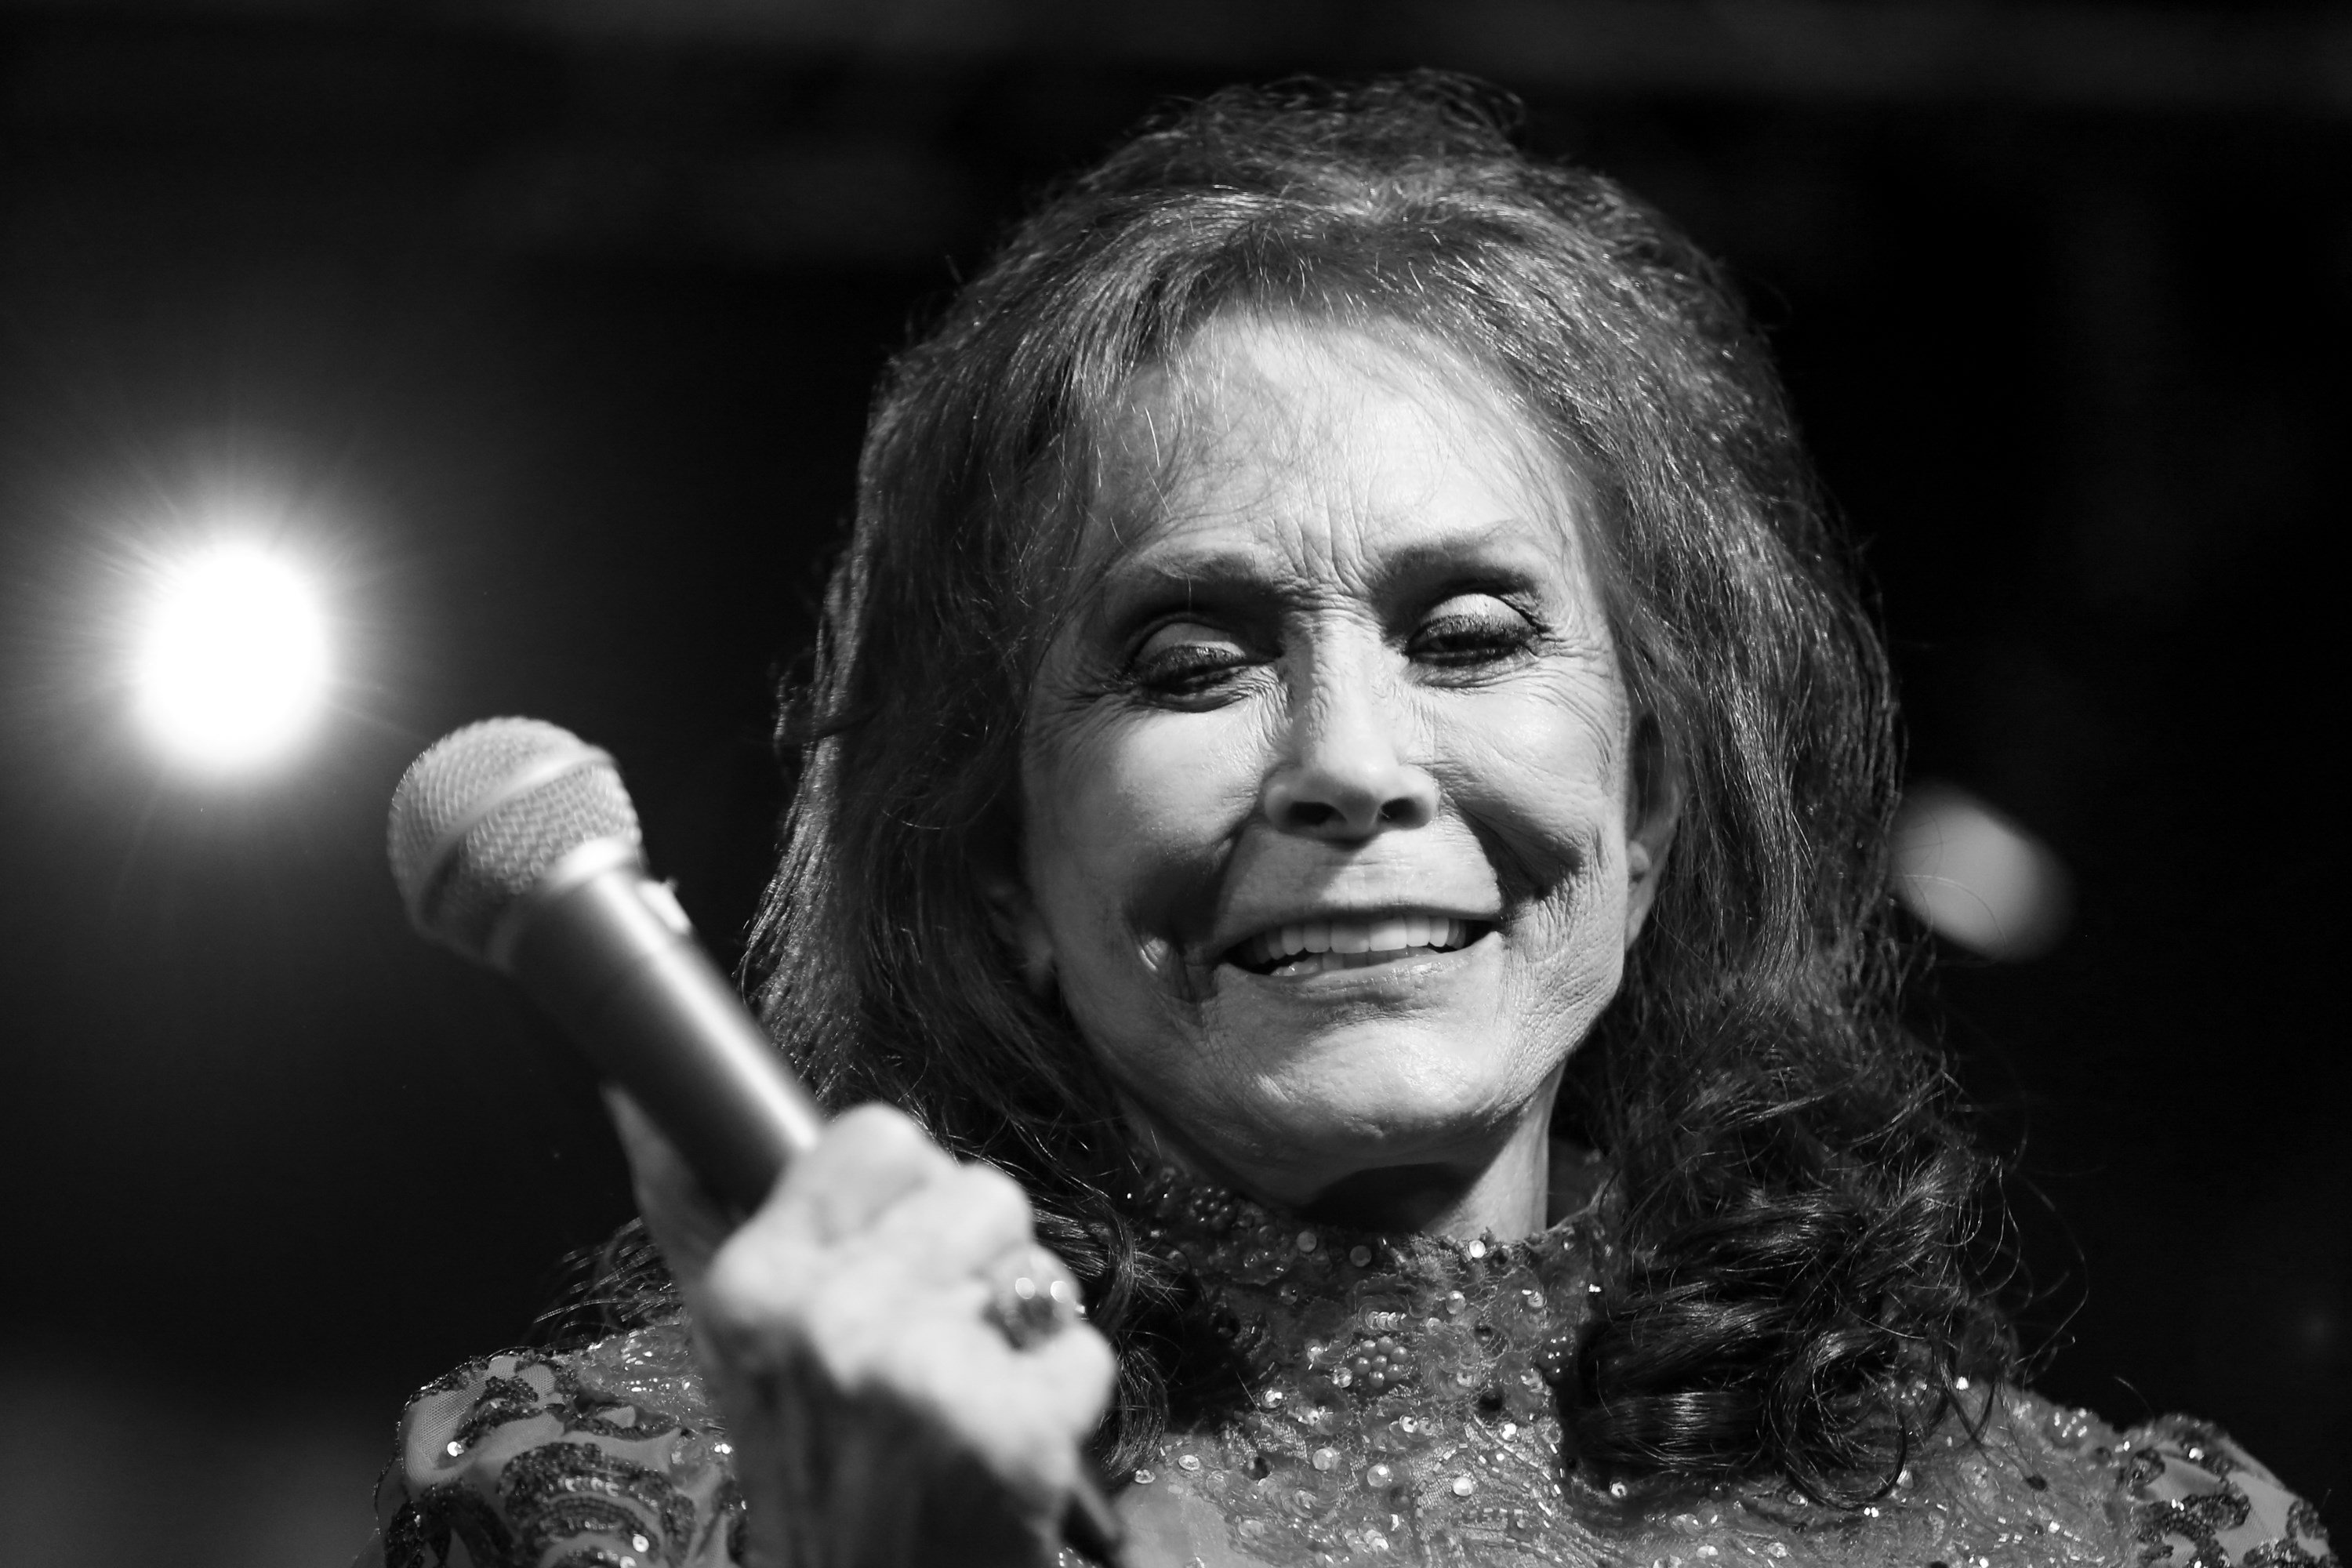 Loretta Lynn performs at the BBC Music Showcase at Stubb's during South By Southwest on Thursday, March 17, 2016, in Austin, Texas. (Photo by Rich Fury/Invision/AP)